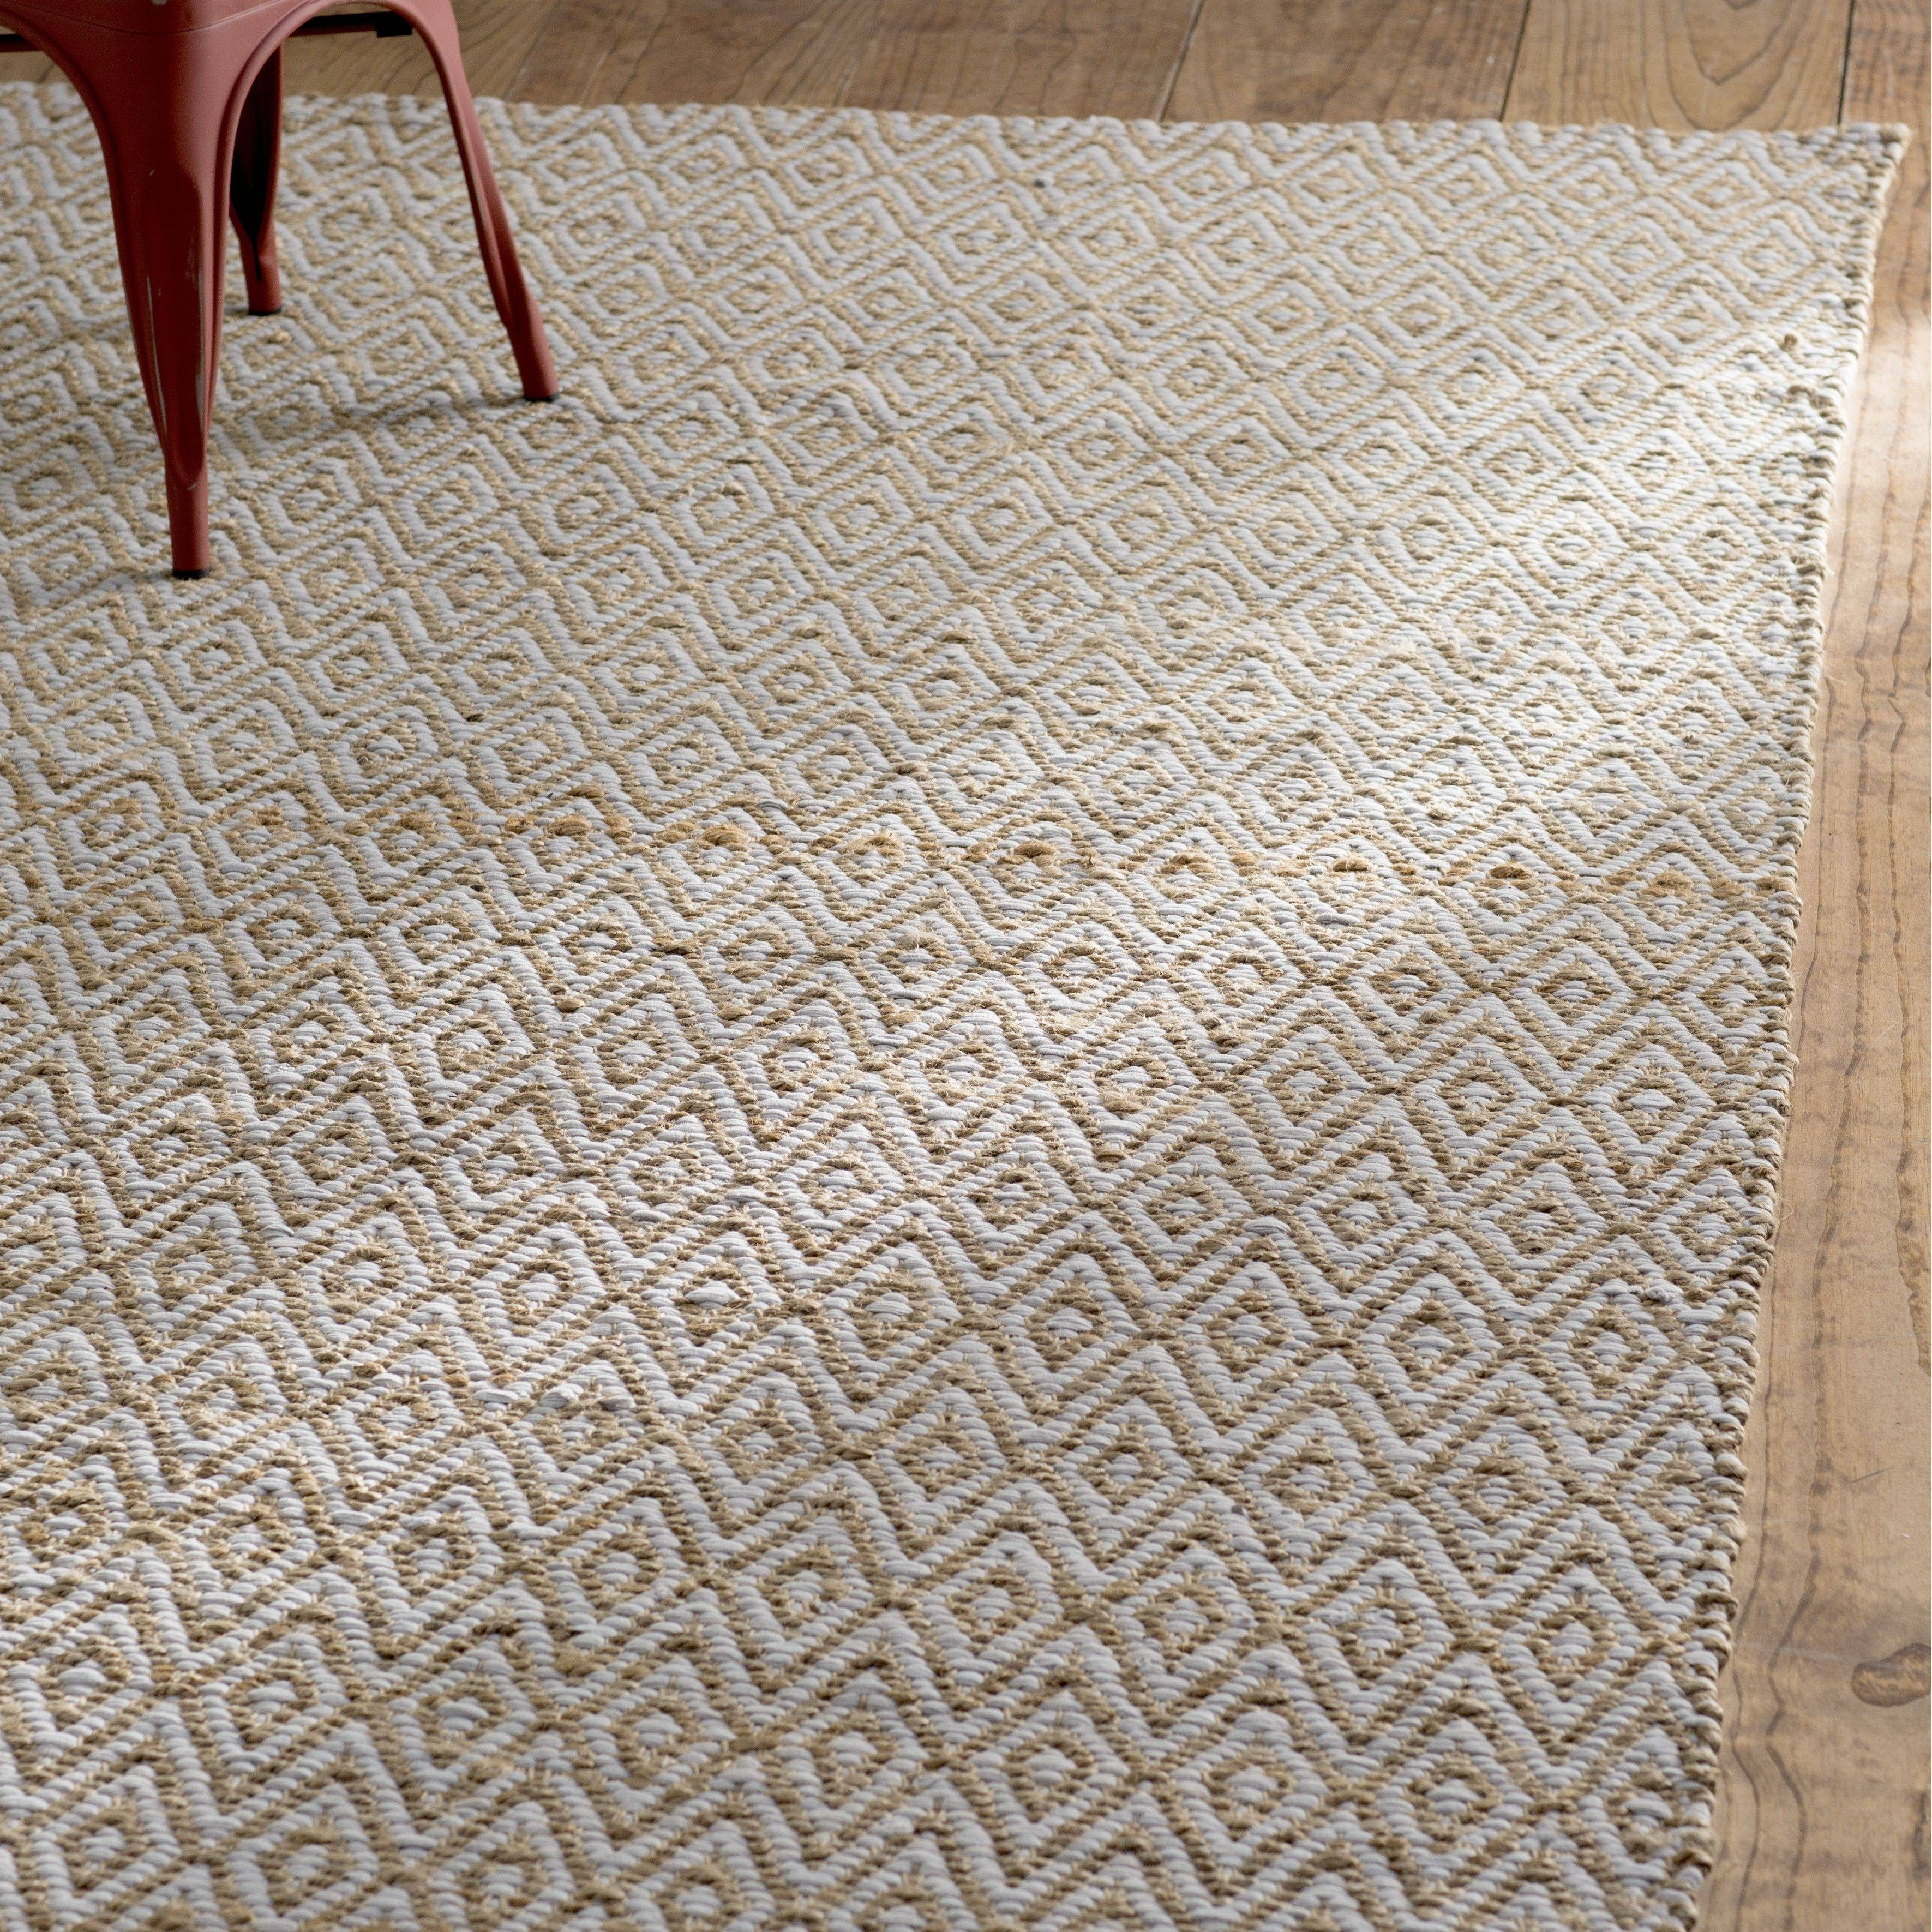 30 Awe Inspiring Burgundy And Brown Area Rugs Inspiration With